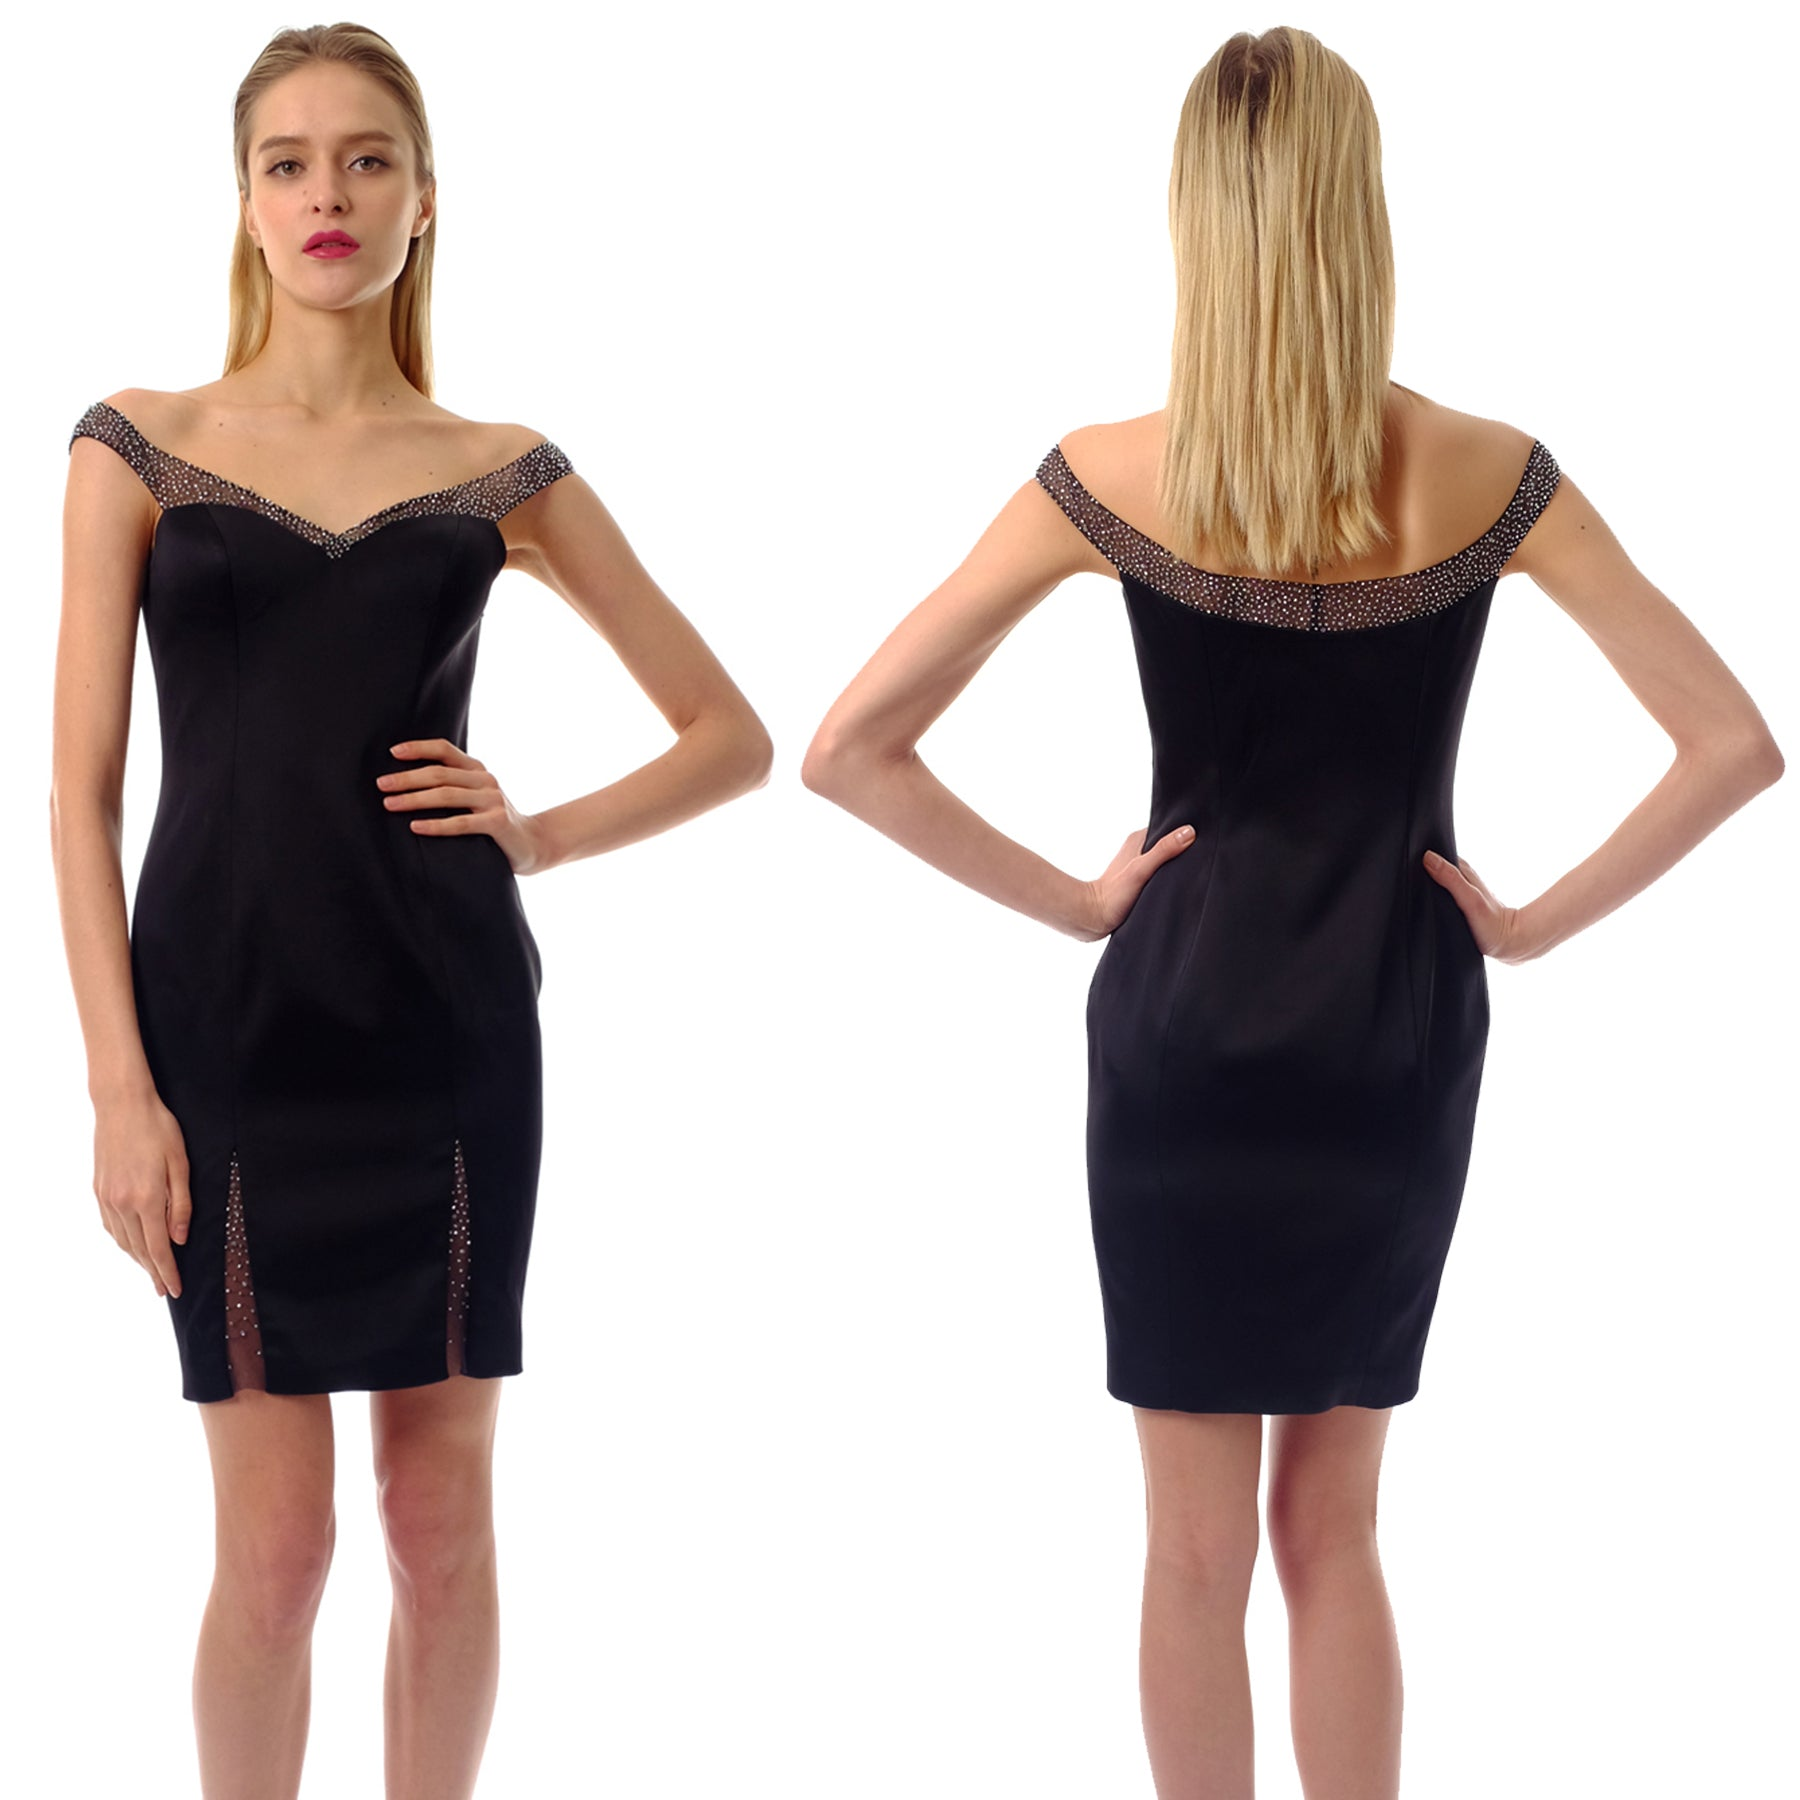 e74bf0c2b1 A little black dress is what every woman should have in their wardrobe.  With off-shoulder design